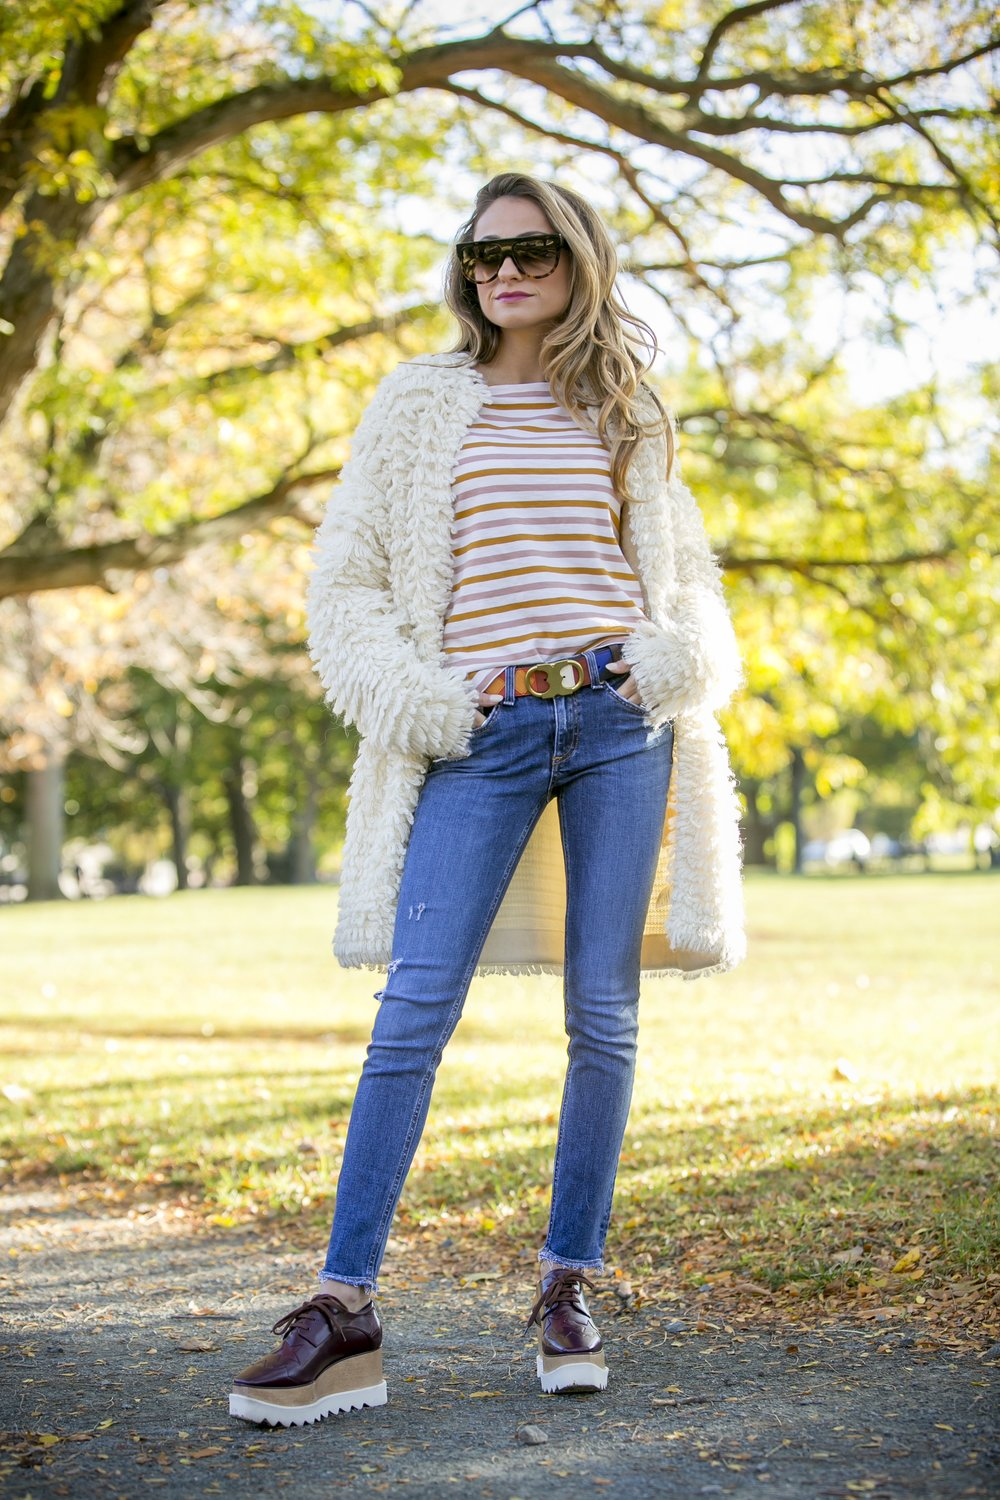 streetstyle wearing J.Crew, Rag and Bone, Stella McCartney platforms